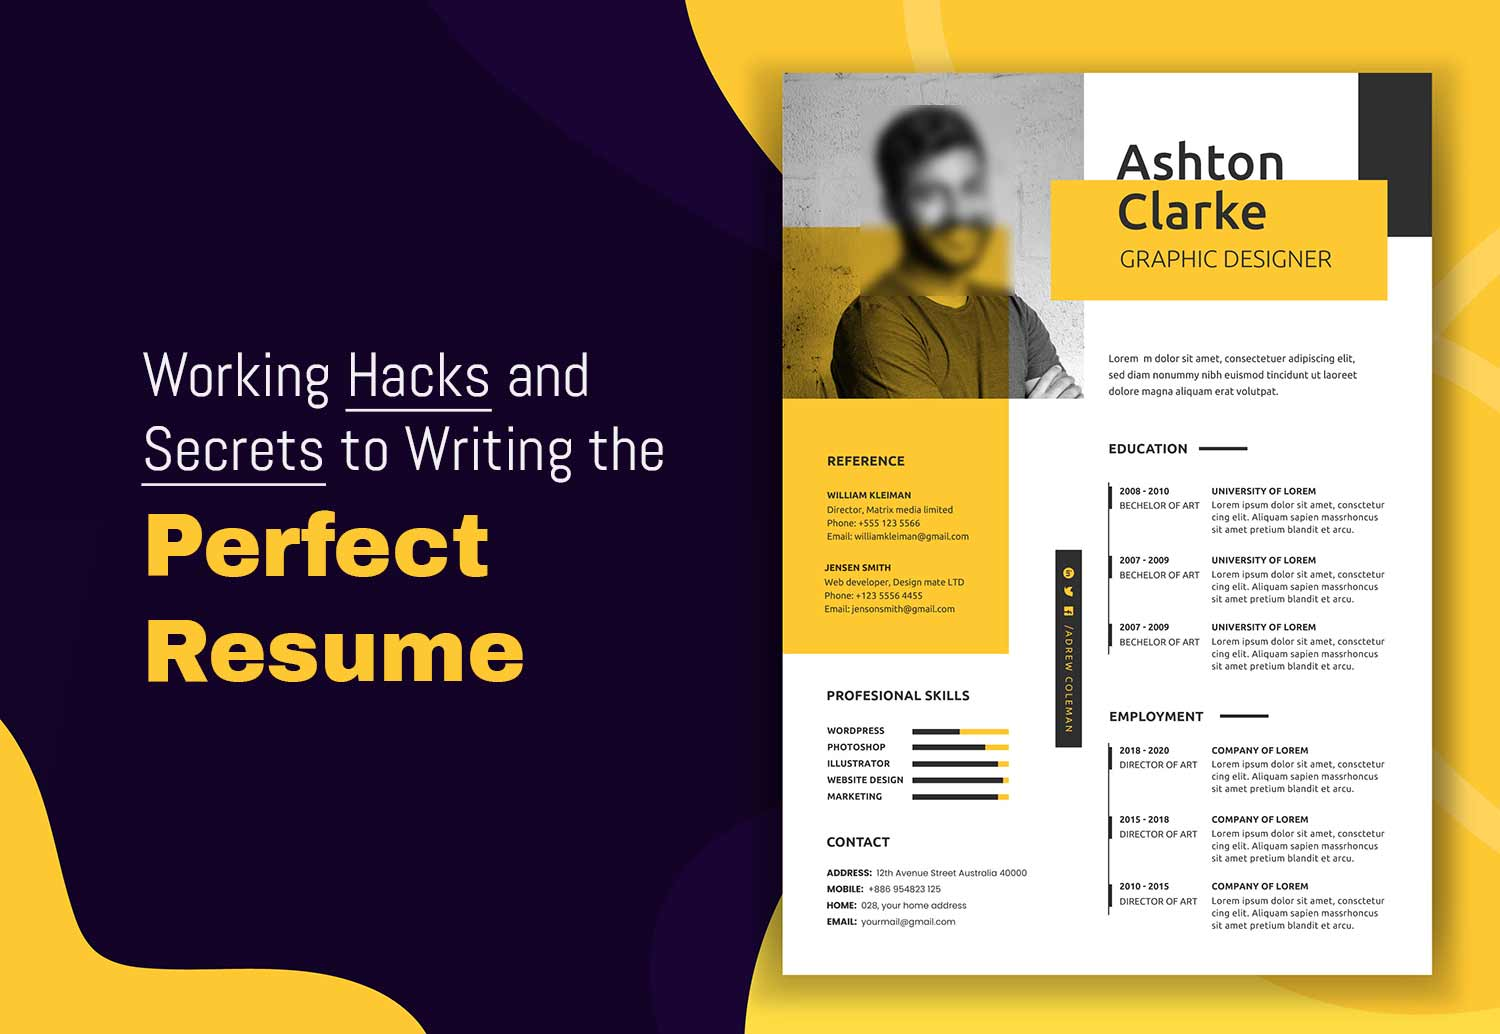 Working Hacks and Secrets to Writing the Perfect Resume